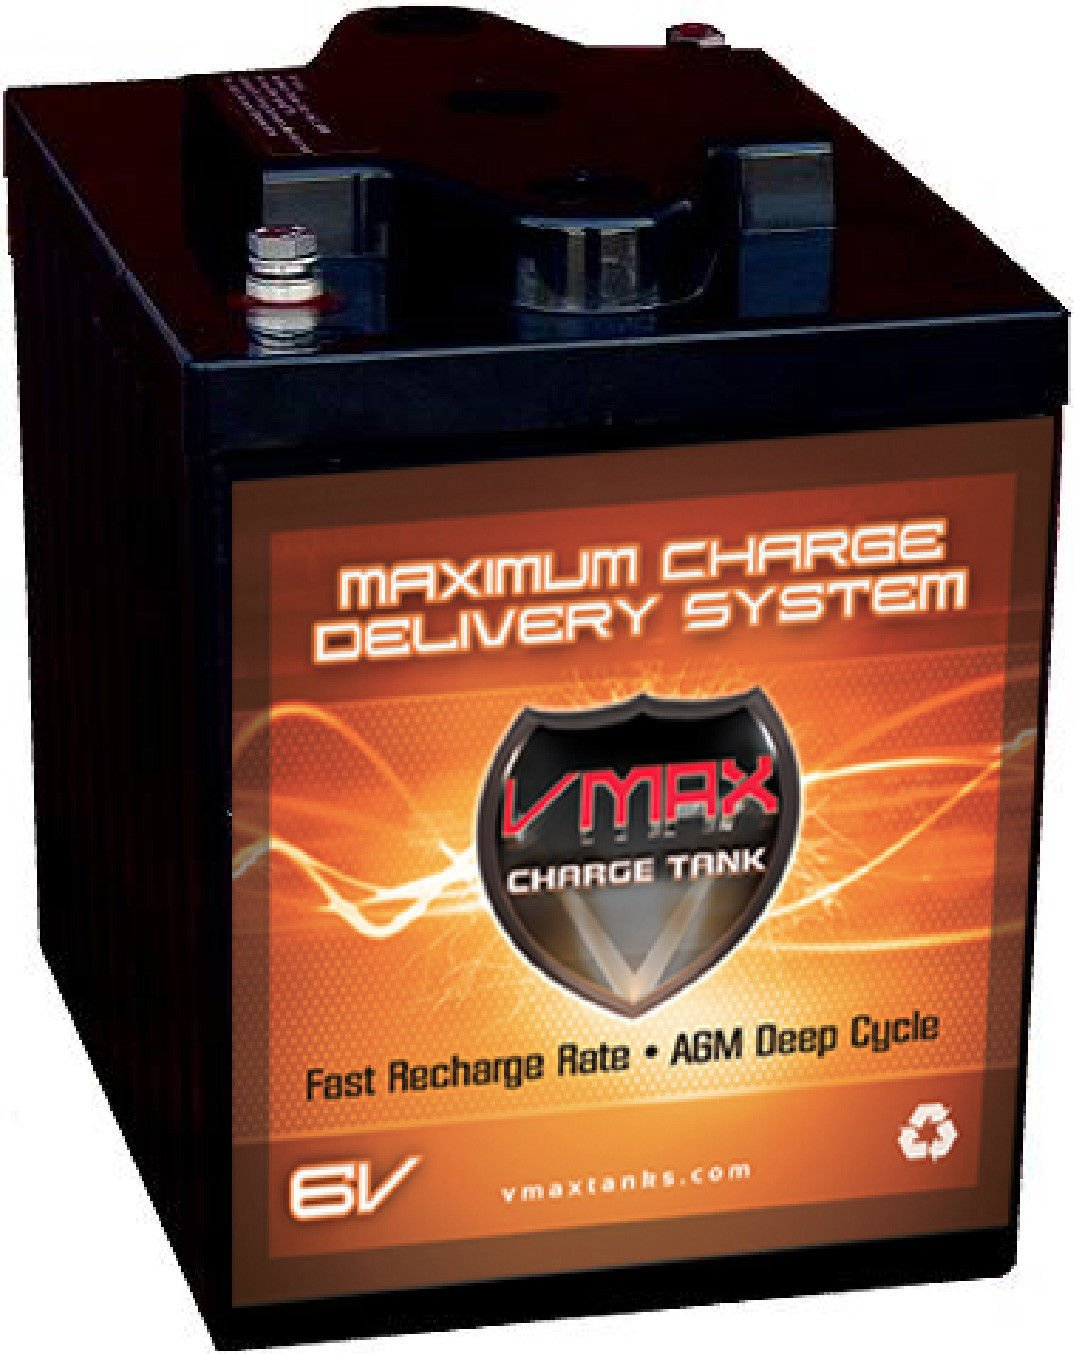 VMAXTANKS Volt 225Ah AGM Battery